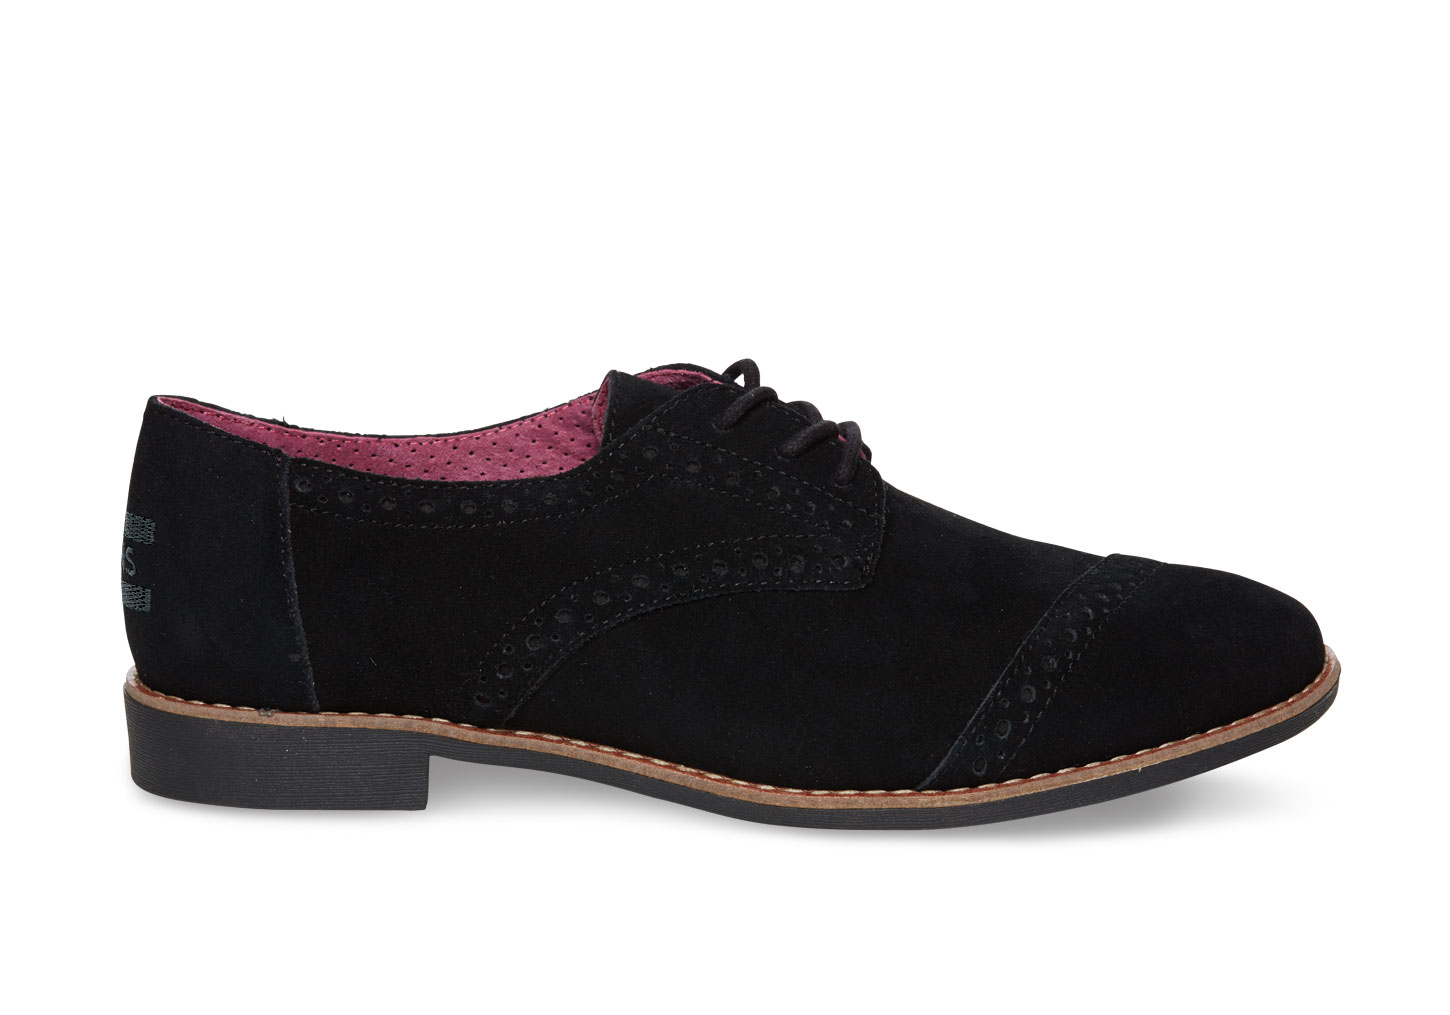 Toms Black Suede Women S Brogues In Black Lyst